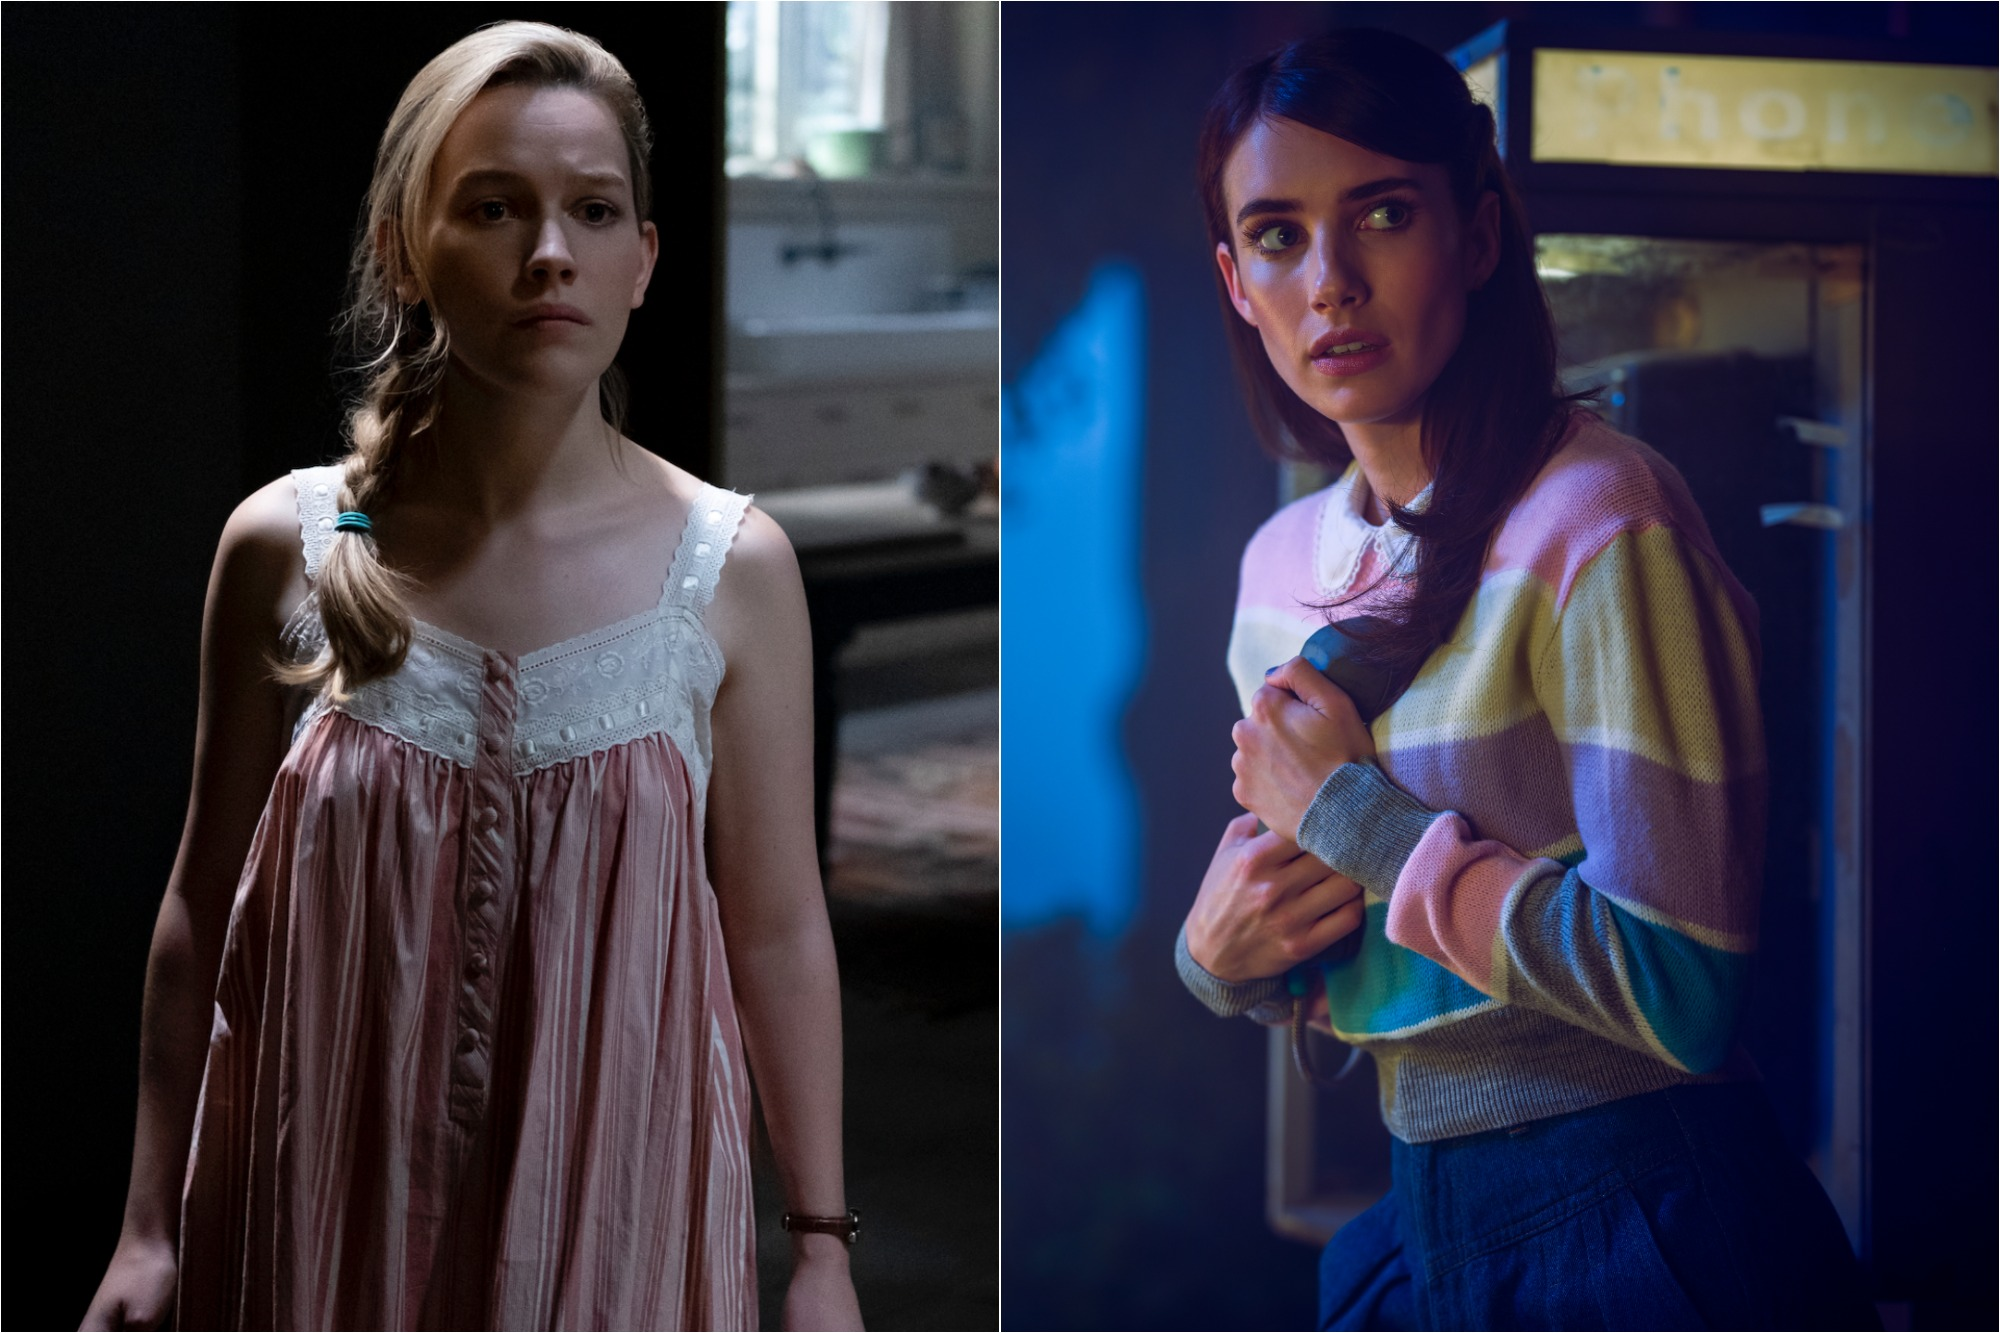 (L) Victoria Pedretti as Dani Clayton in 'THE HAUNTING OF BLY MANOR' / (R) Emma Roberts as Brooke Thompson in 'AMERICAN HORROR STORY: 1984